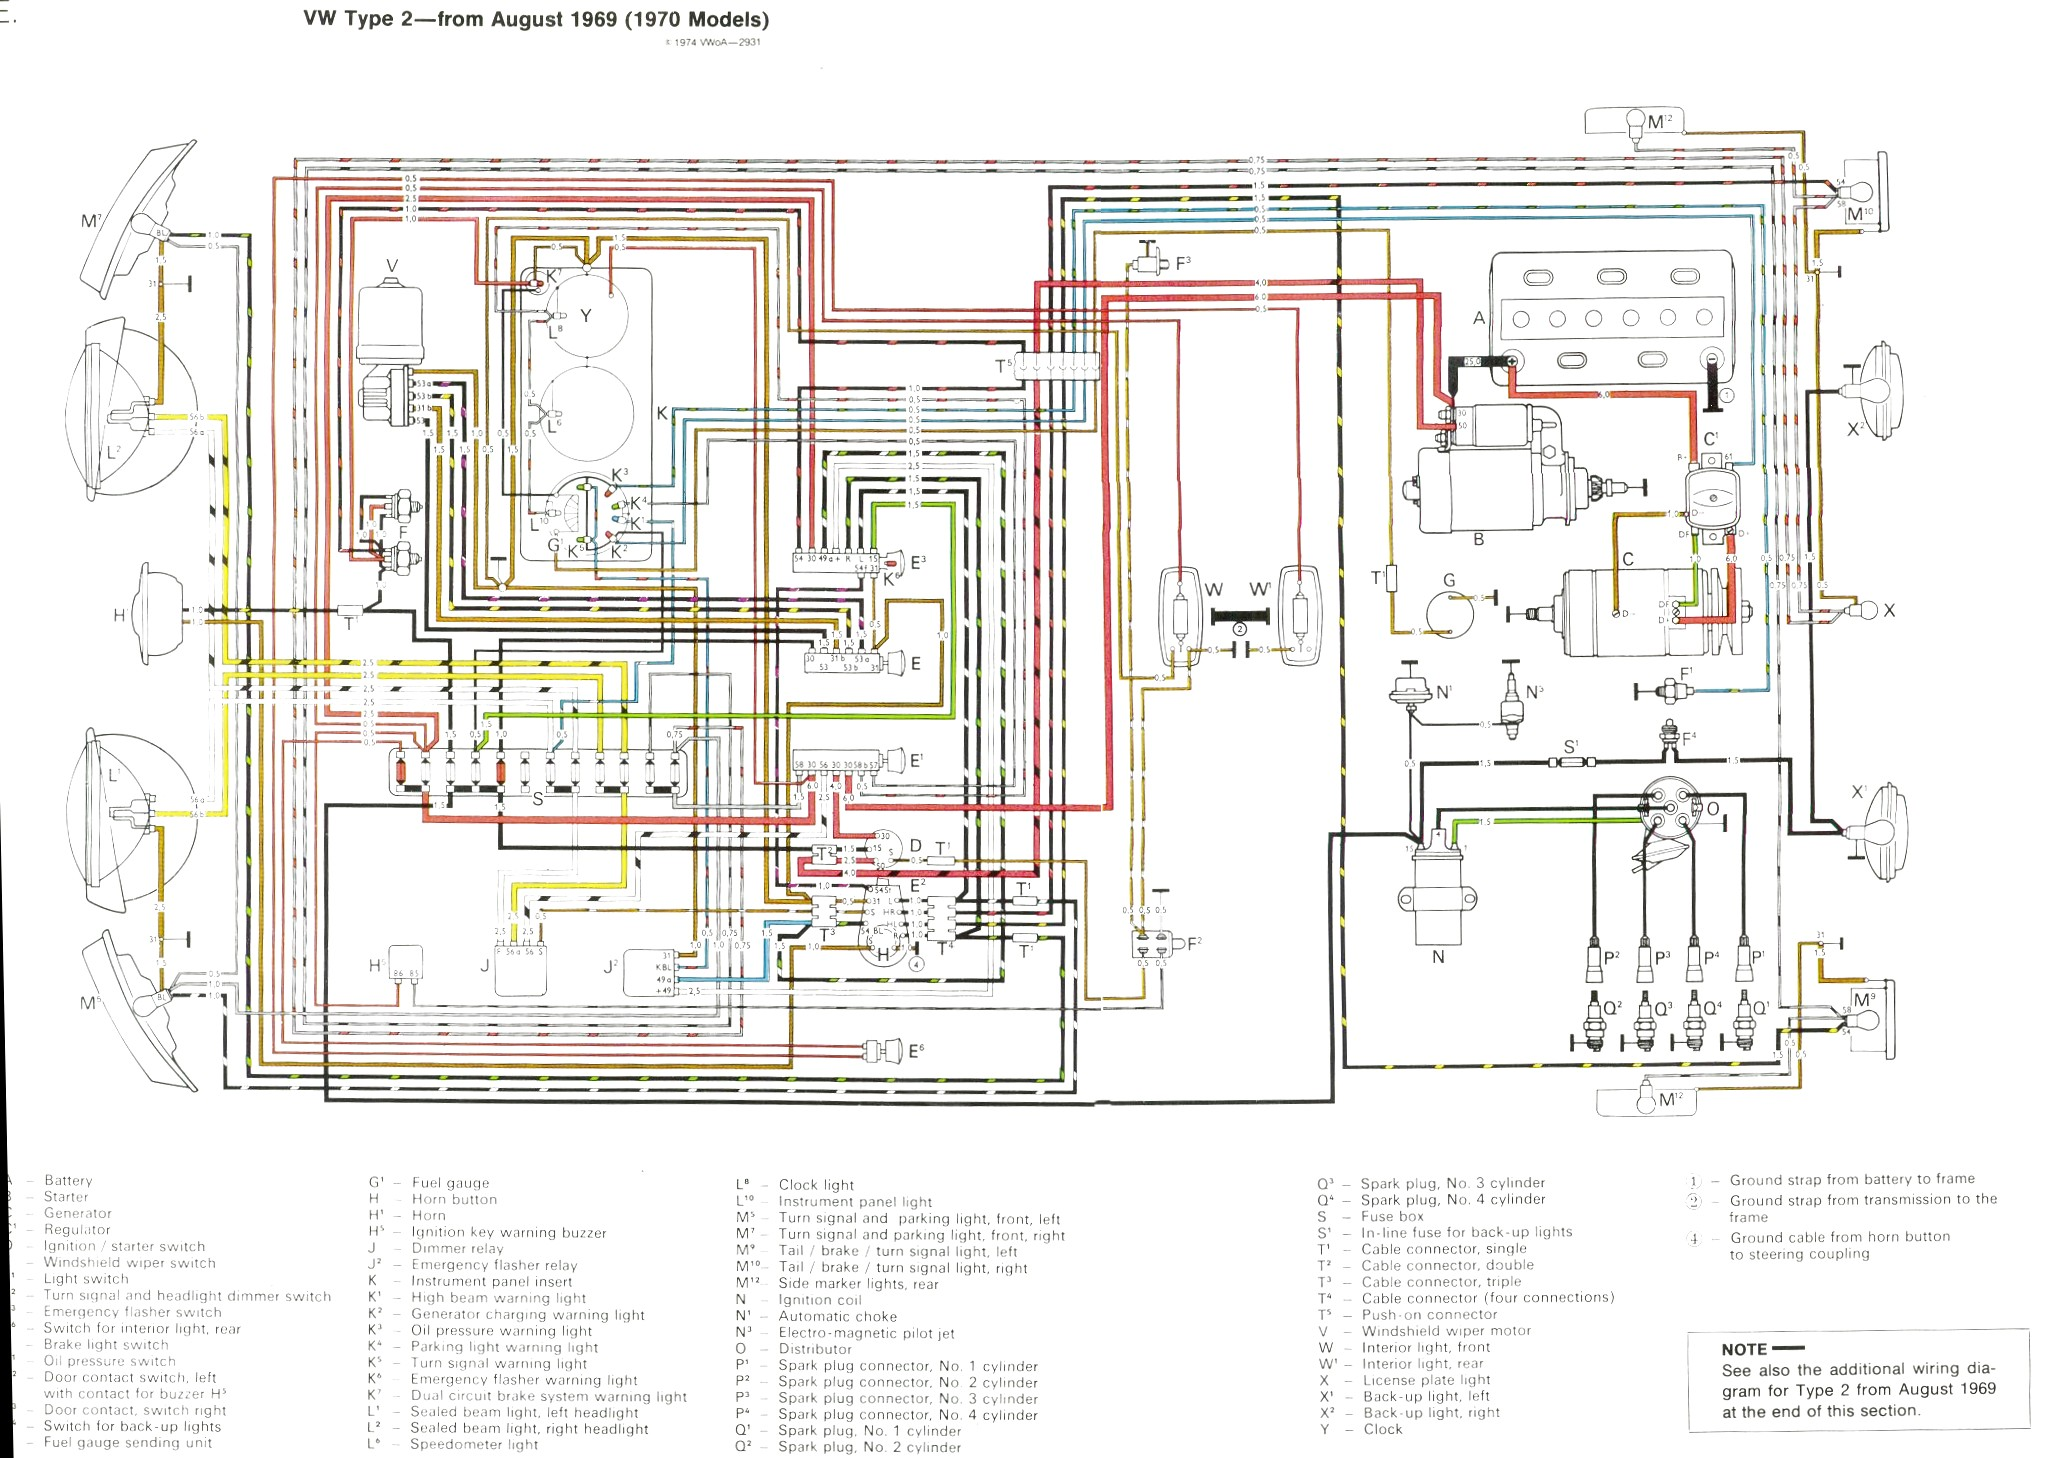 1972 Vw Bus Wiring Diagram Just Another Blog Engine Vintagebus Com And Other Diagrams Rh 1971 Volkswagen 1978